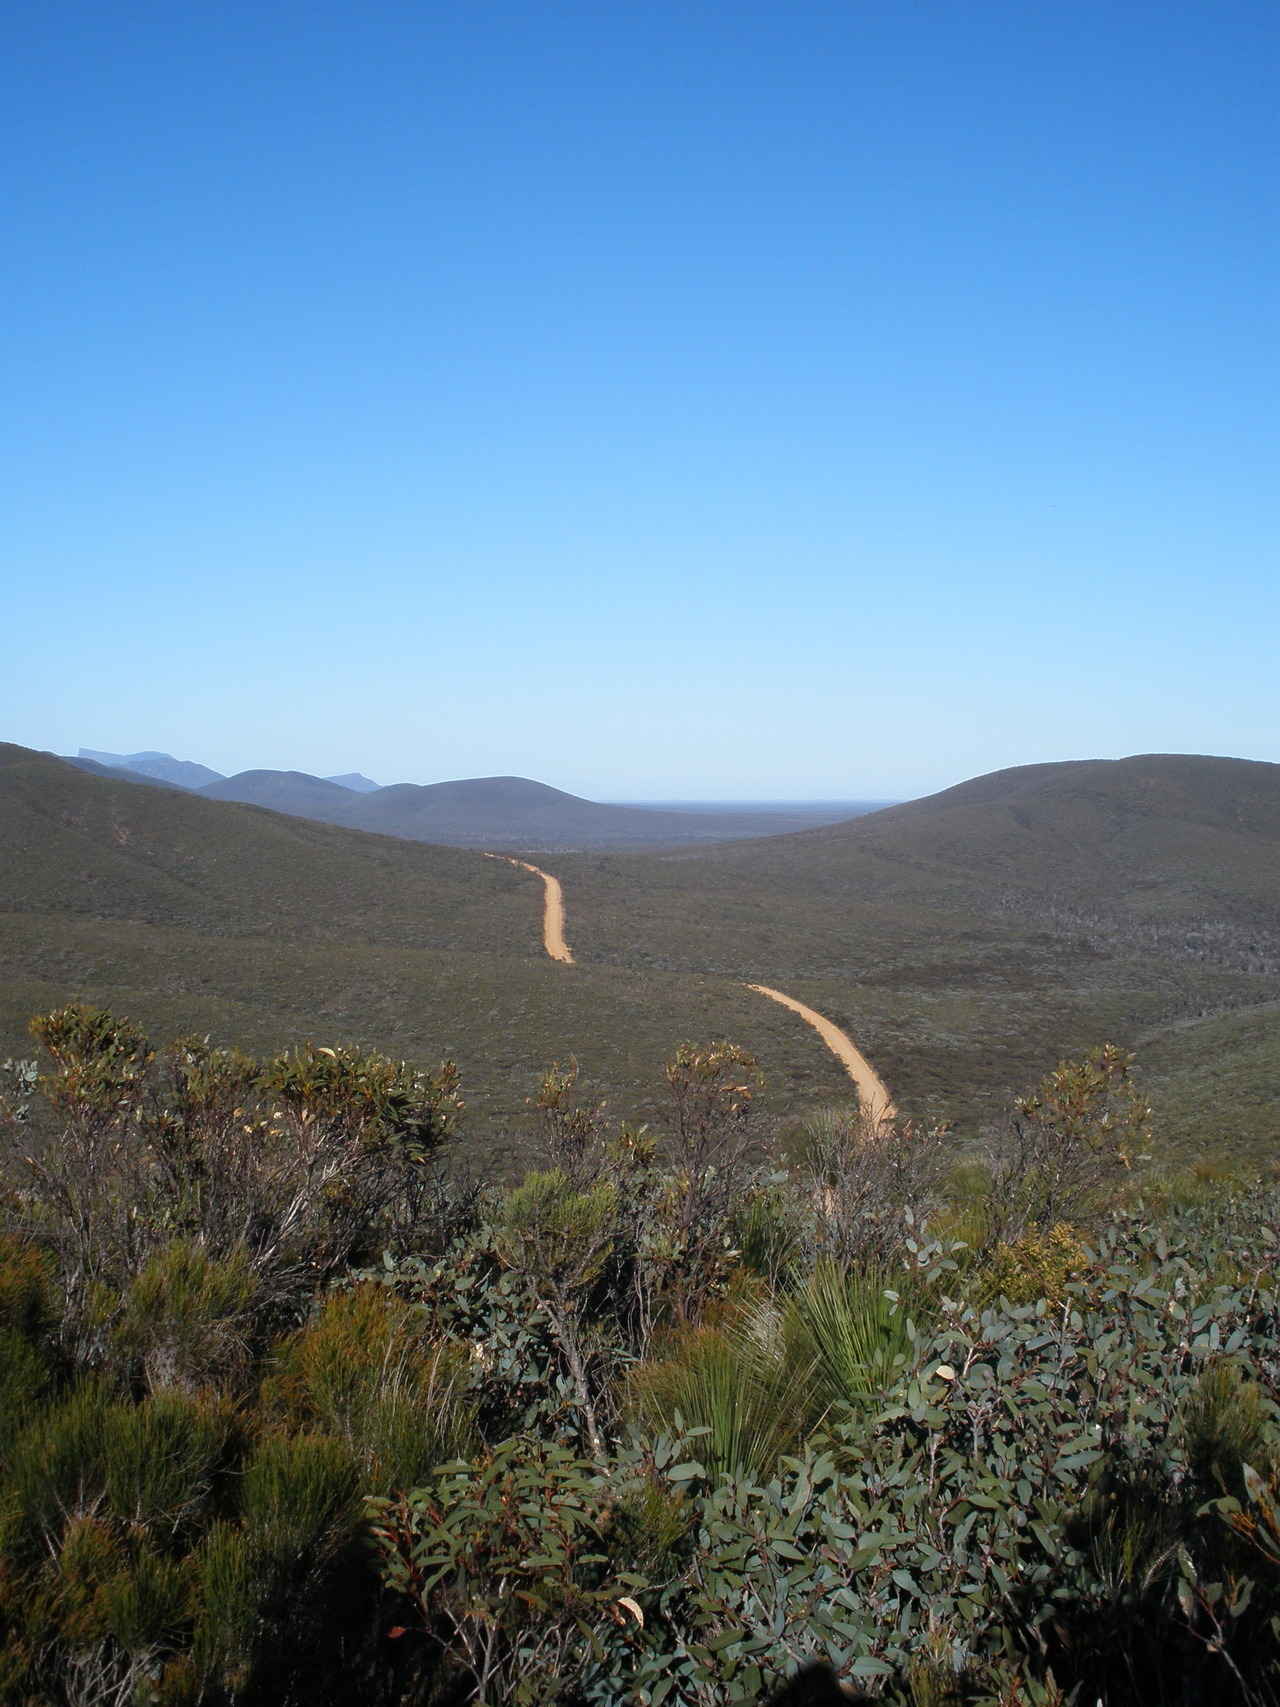 The road of the Stirling Ranges